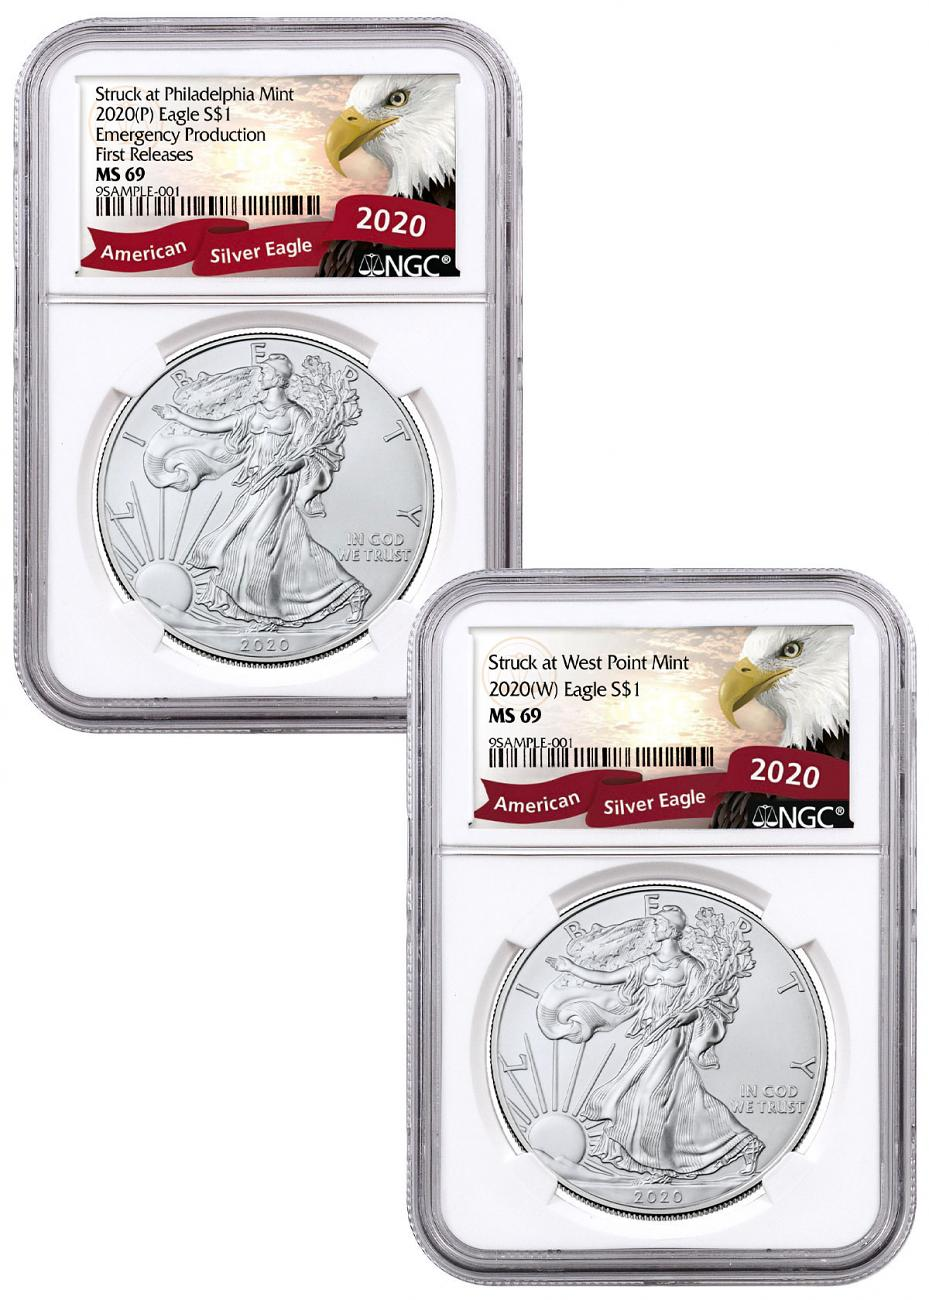 2-Piece Set - 2020-(P)(W) Struck at Philadelphia and West Point Silver Eagle NGC MS69 Exclusive Eagle Label